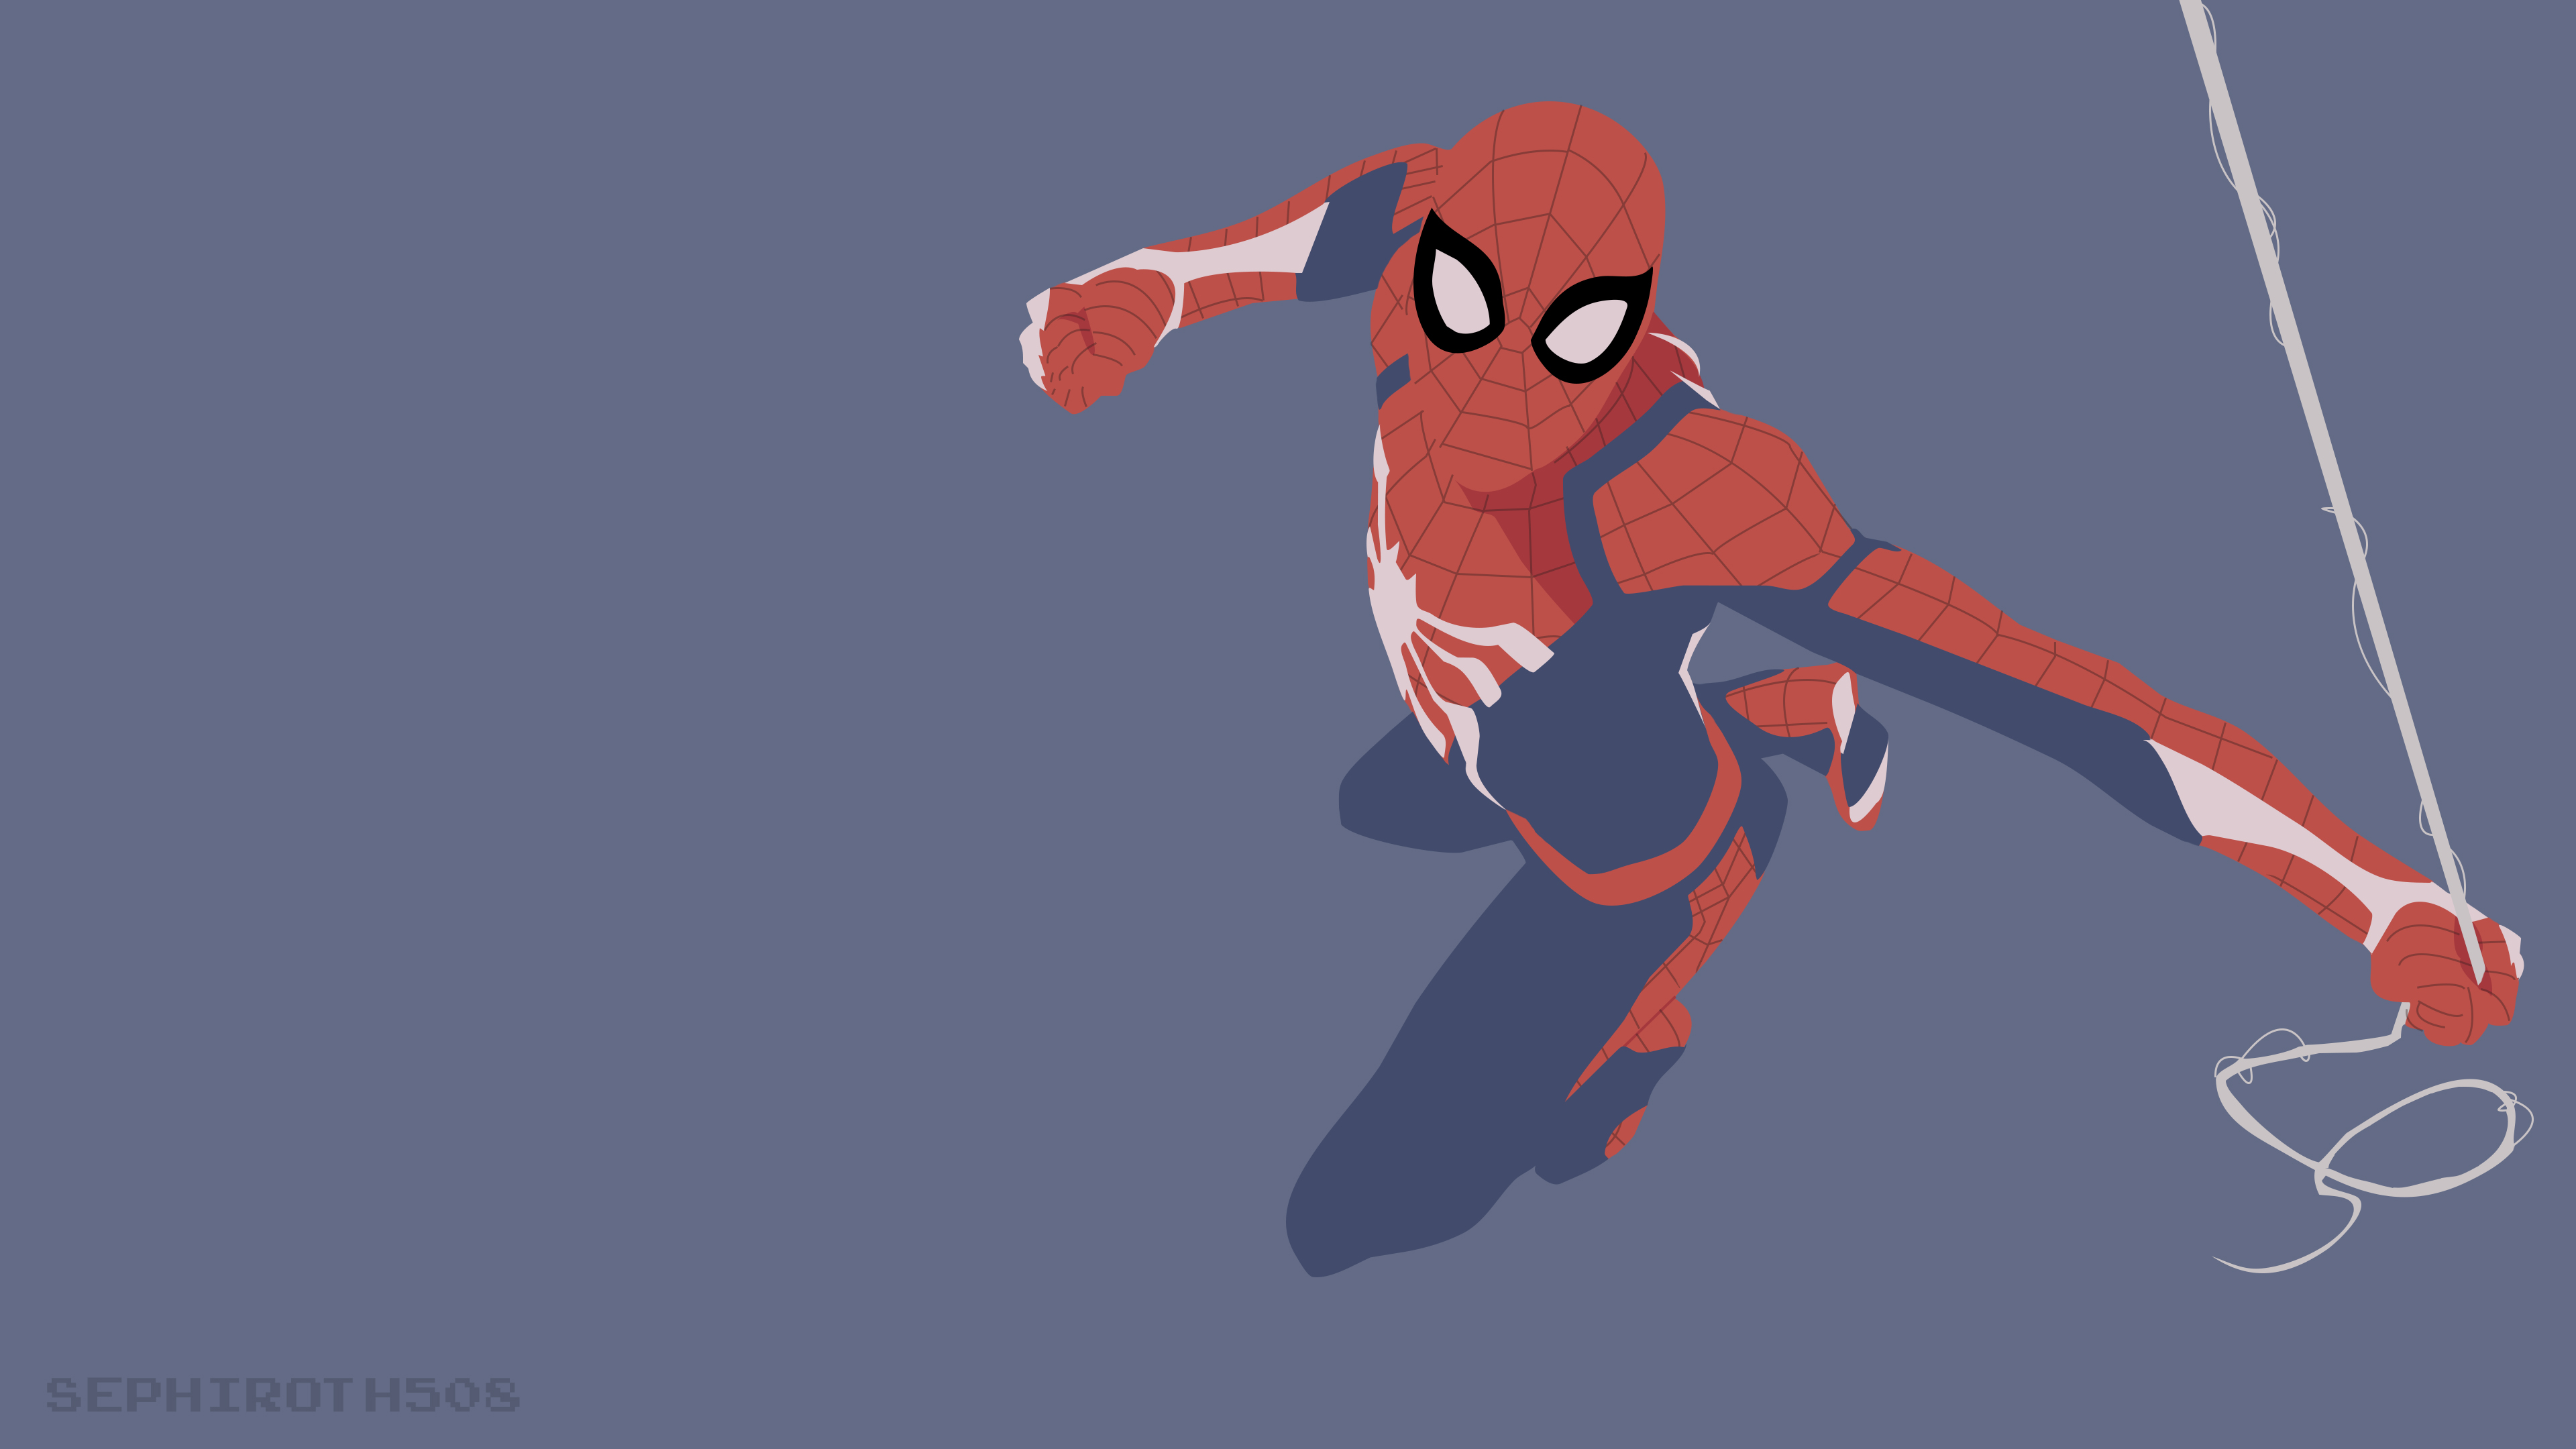 spiderman ps4 minimalist 1536521535 - SpiderMan PS4 Minimalist - superheroes wallpapers, spiderman wallpapers, hd-wallpapers, deviantart wallpapers, artwork wallpapers, artist wallpapers, 4k-wallpapers